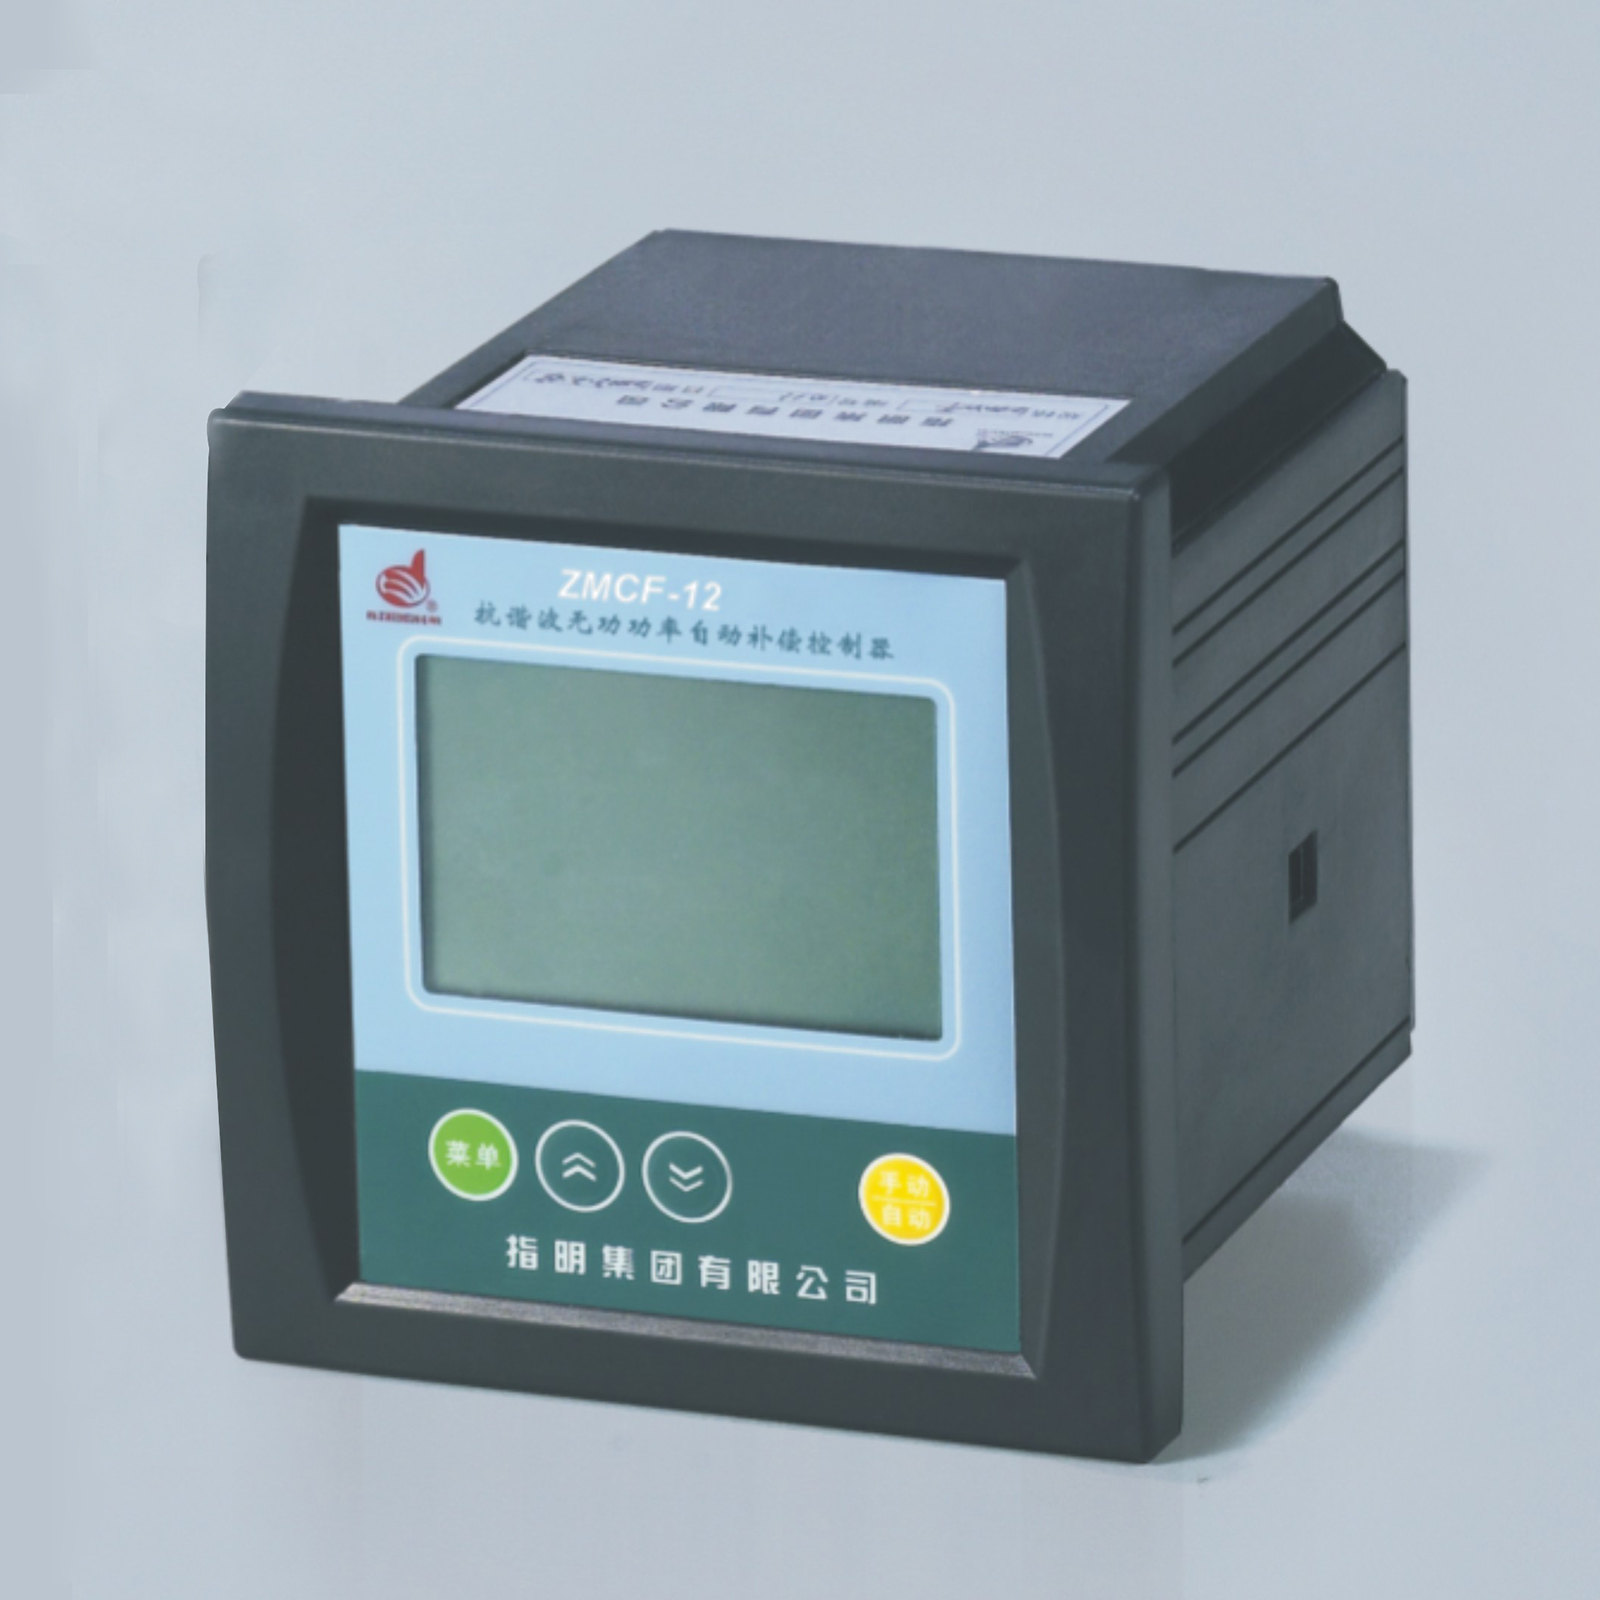 ZMCF  Series Anti-harmonic reactive power automatic compensating controller